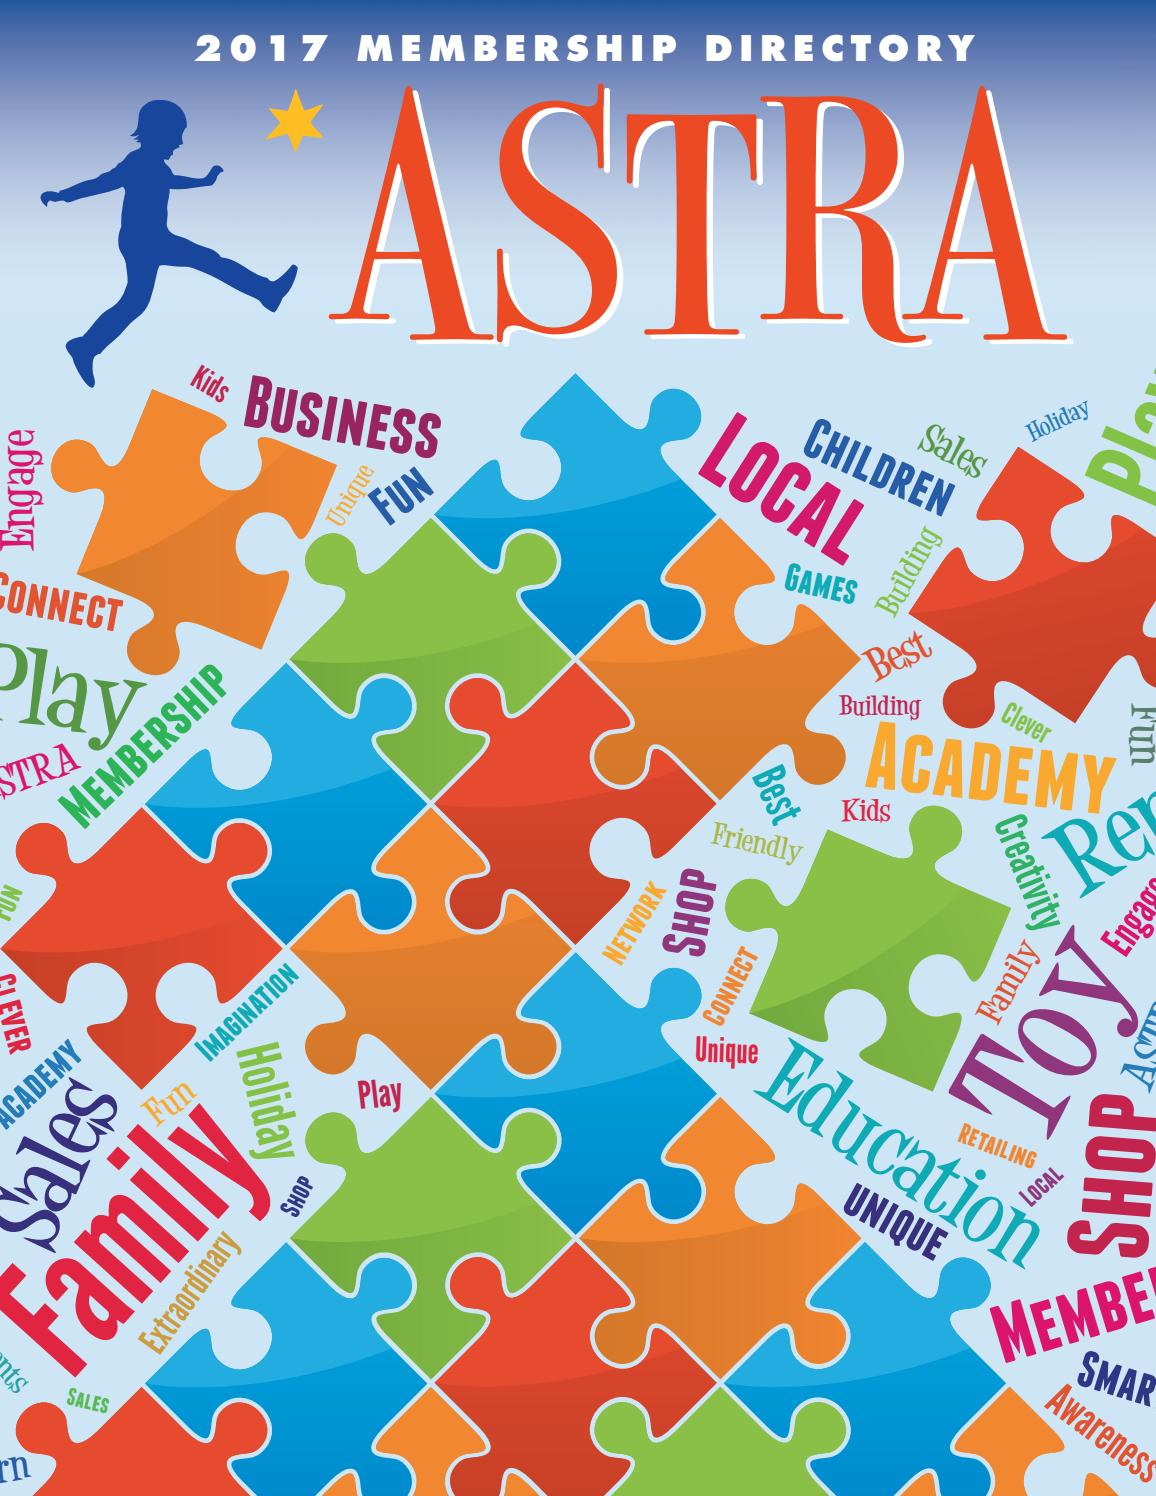 17b77ee31f3 ASTRA Membership Directory 2017 by Fahy-Williams Publishing - issuu